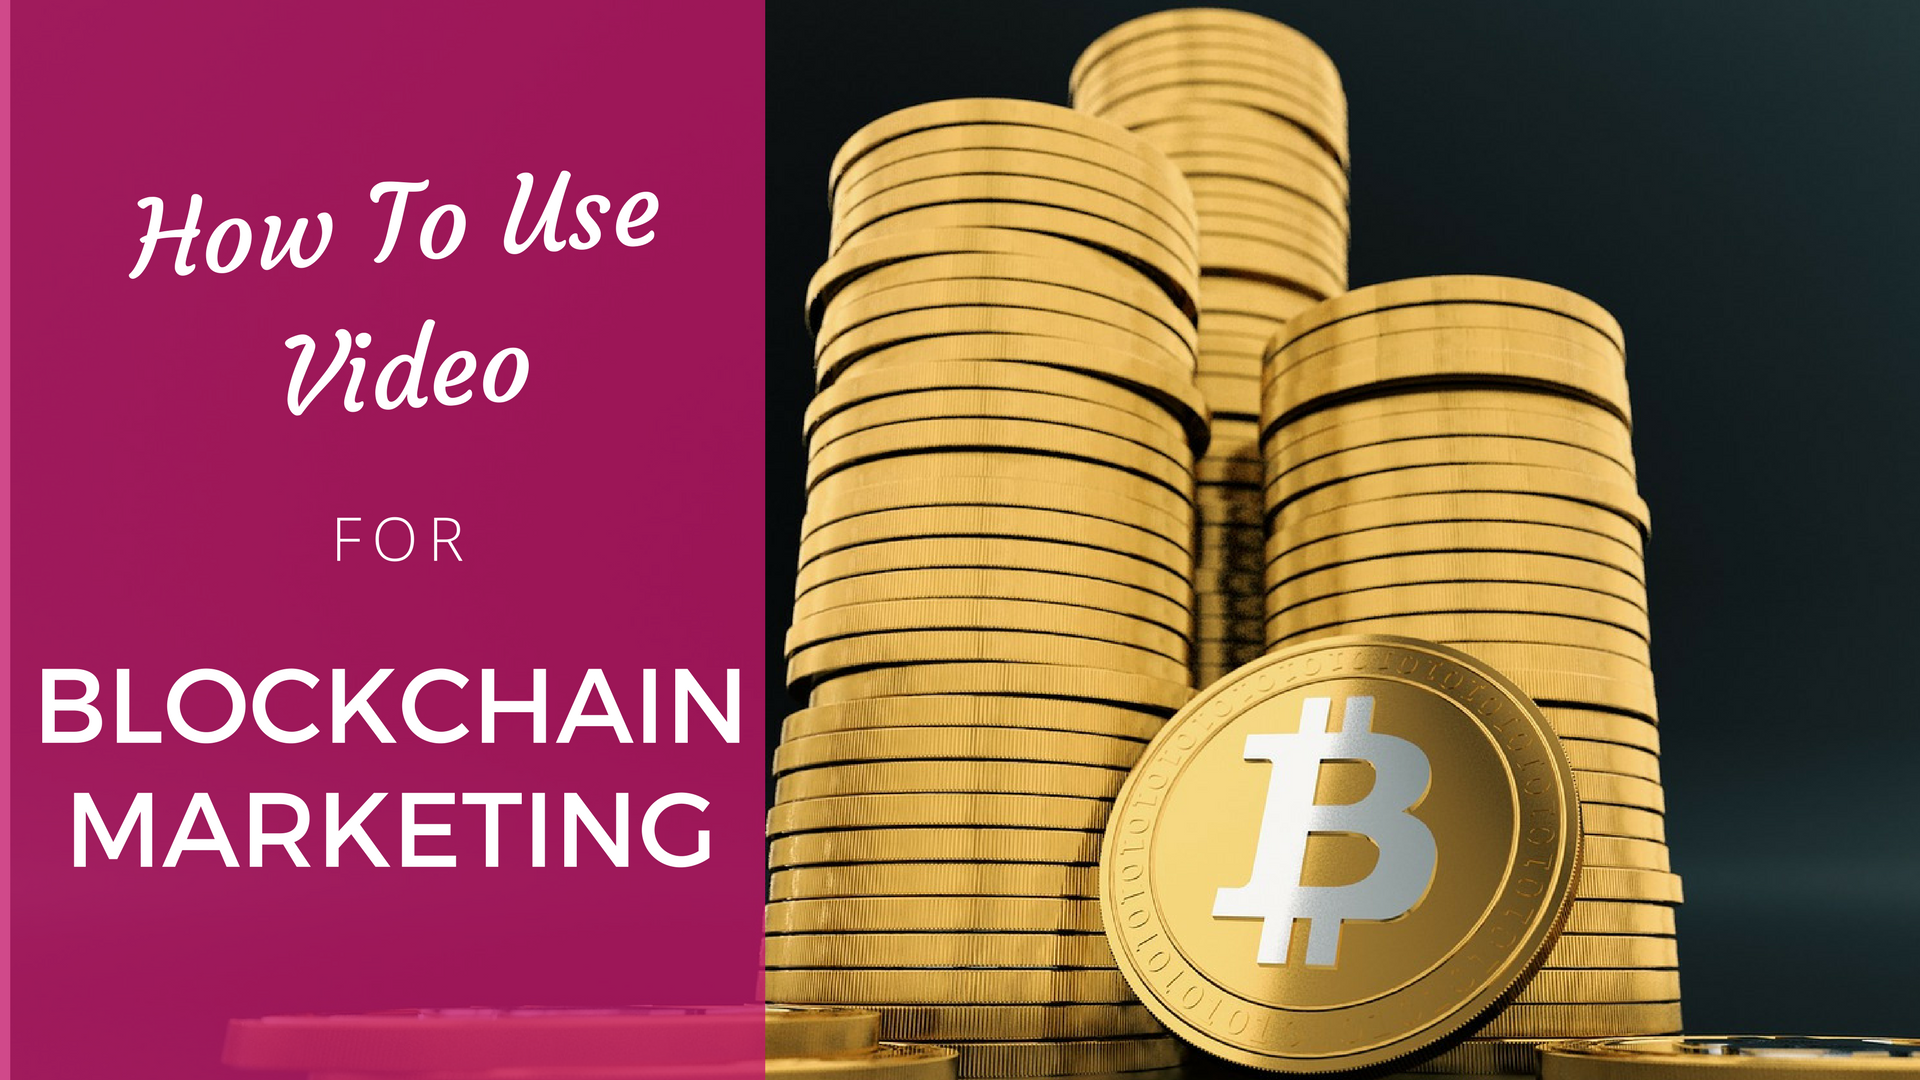 How To Use Video For BlockChain Marketing In The Year 2018